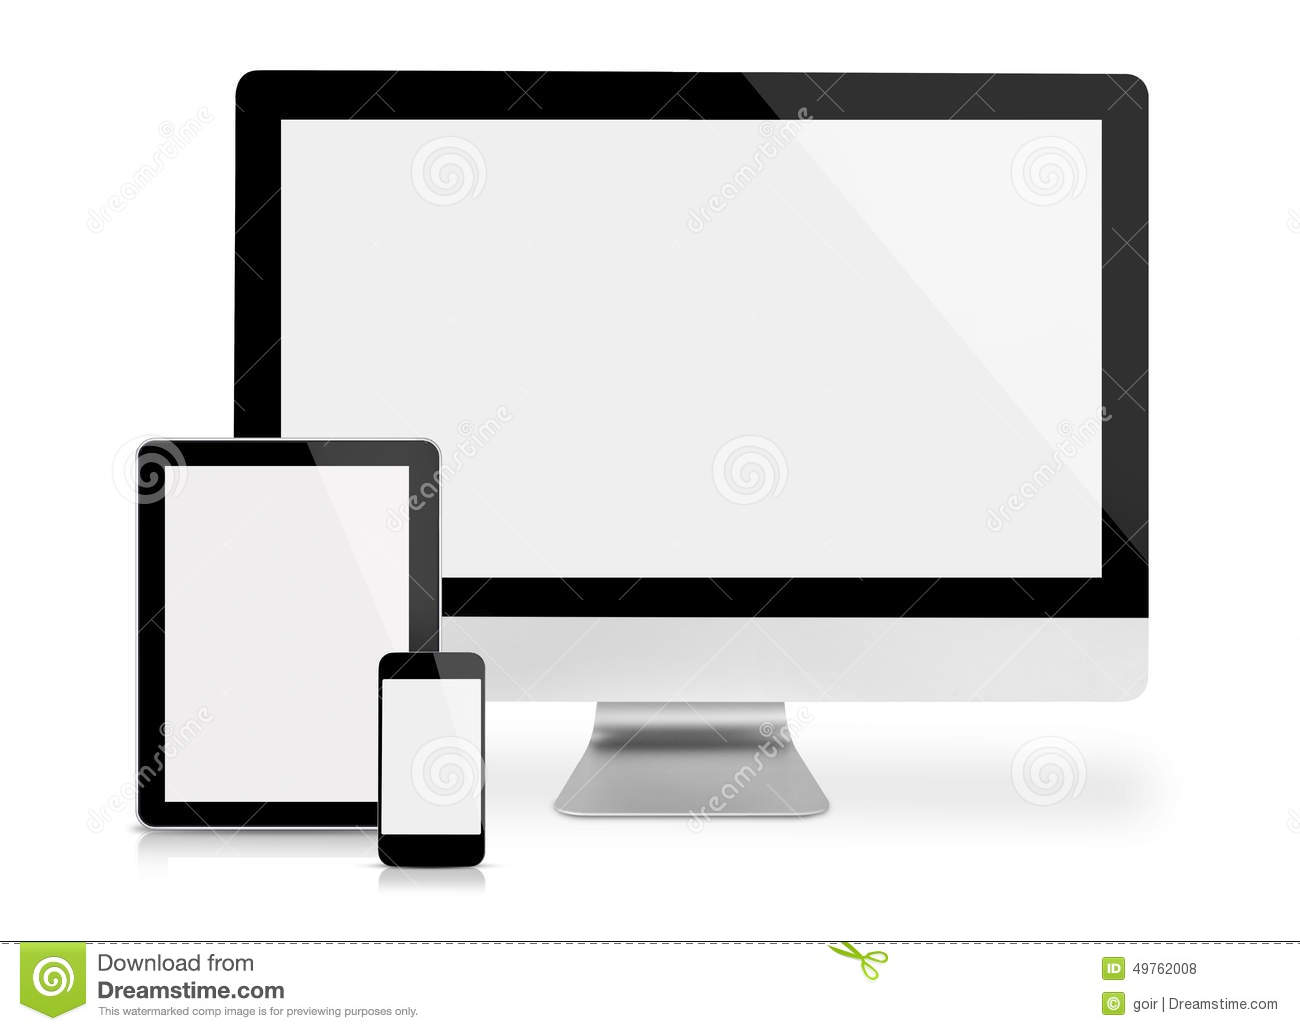 Computer monitor, tablet and phone